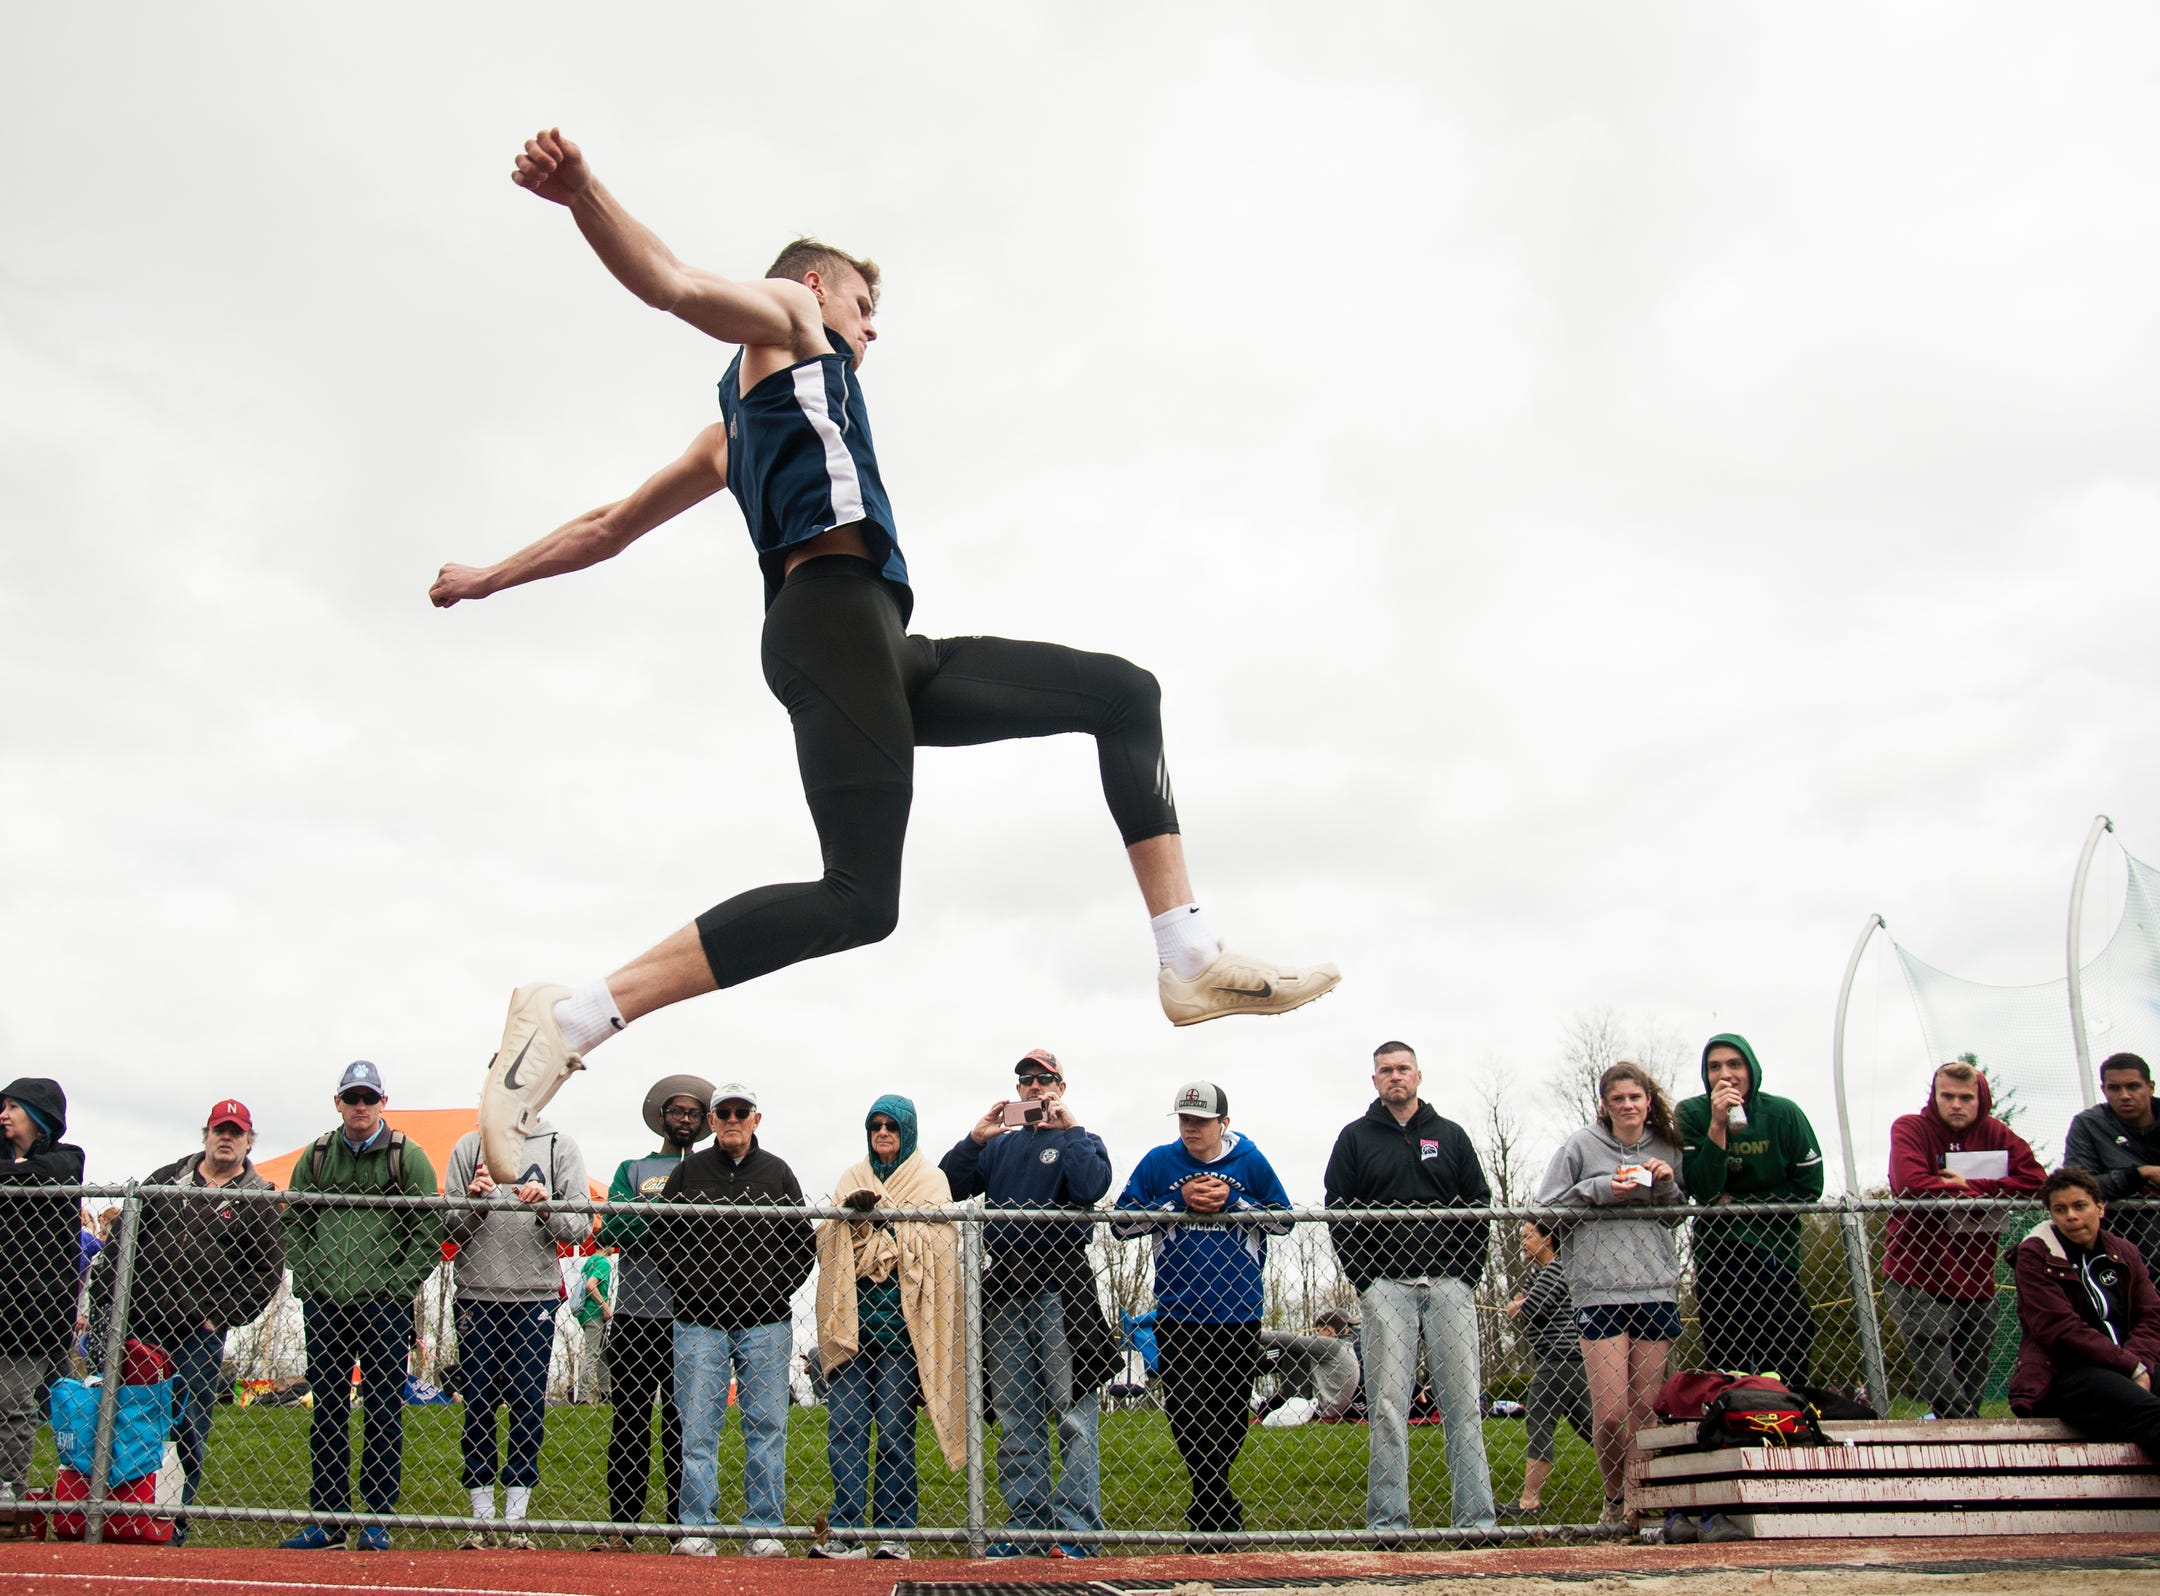 Essex's Ryan Guerino competes in the long jump during the Burlington Invitational high school track and field meet at Buck Hard Field on Saturday May 11, 2019 in Burlington, Vermont.